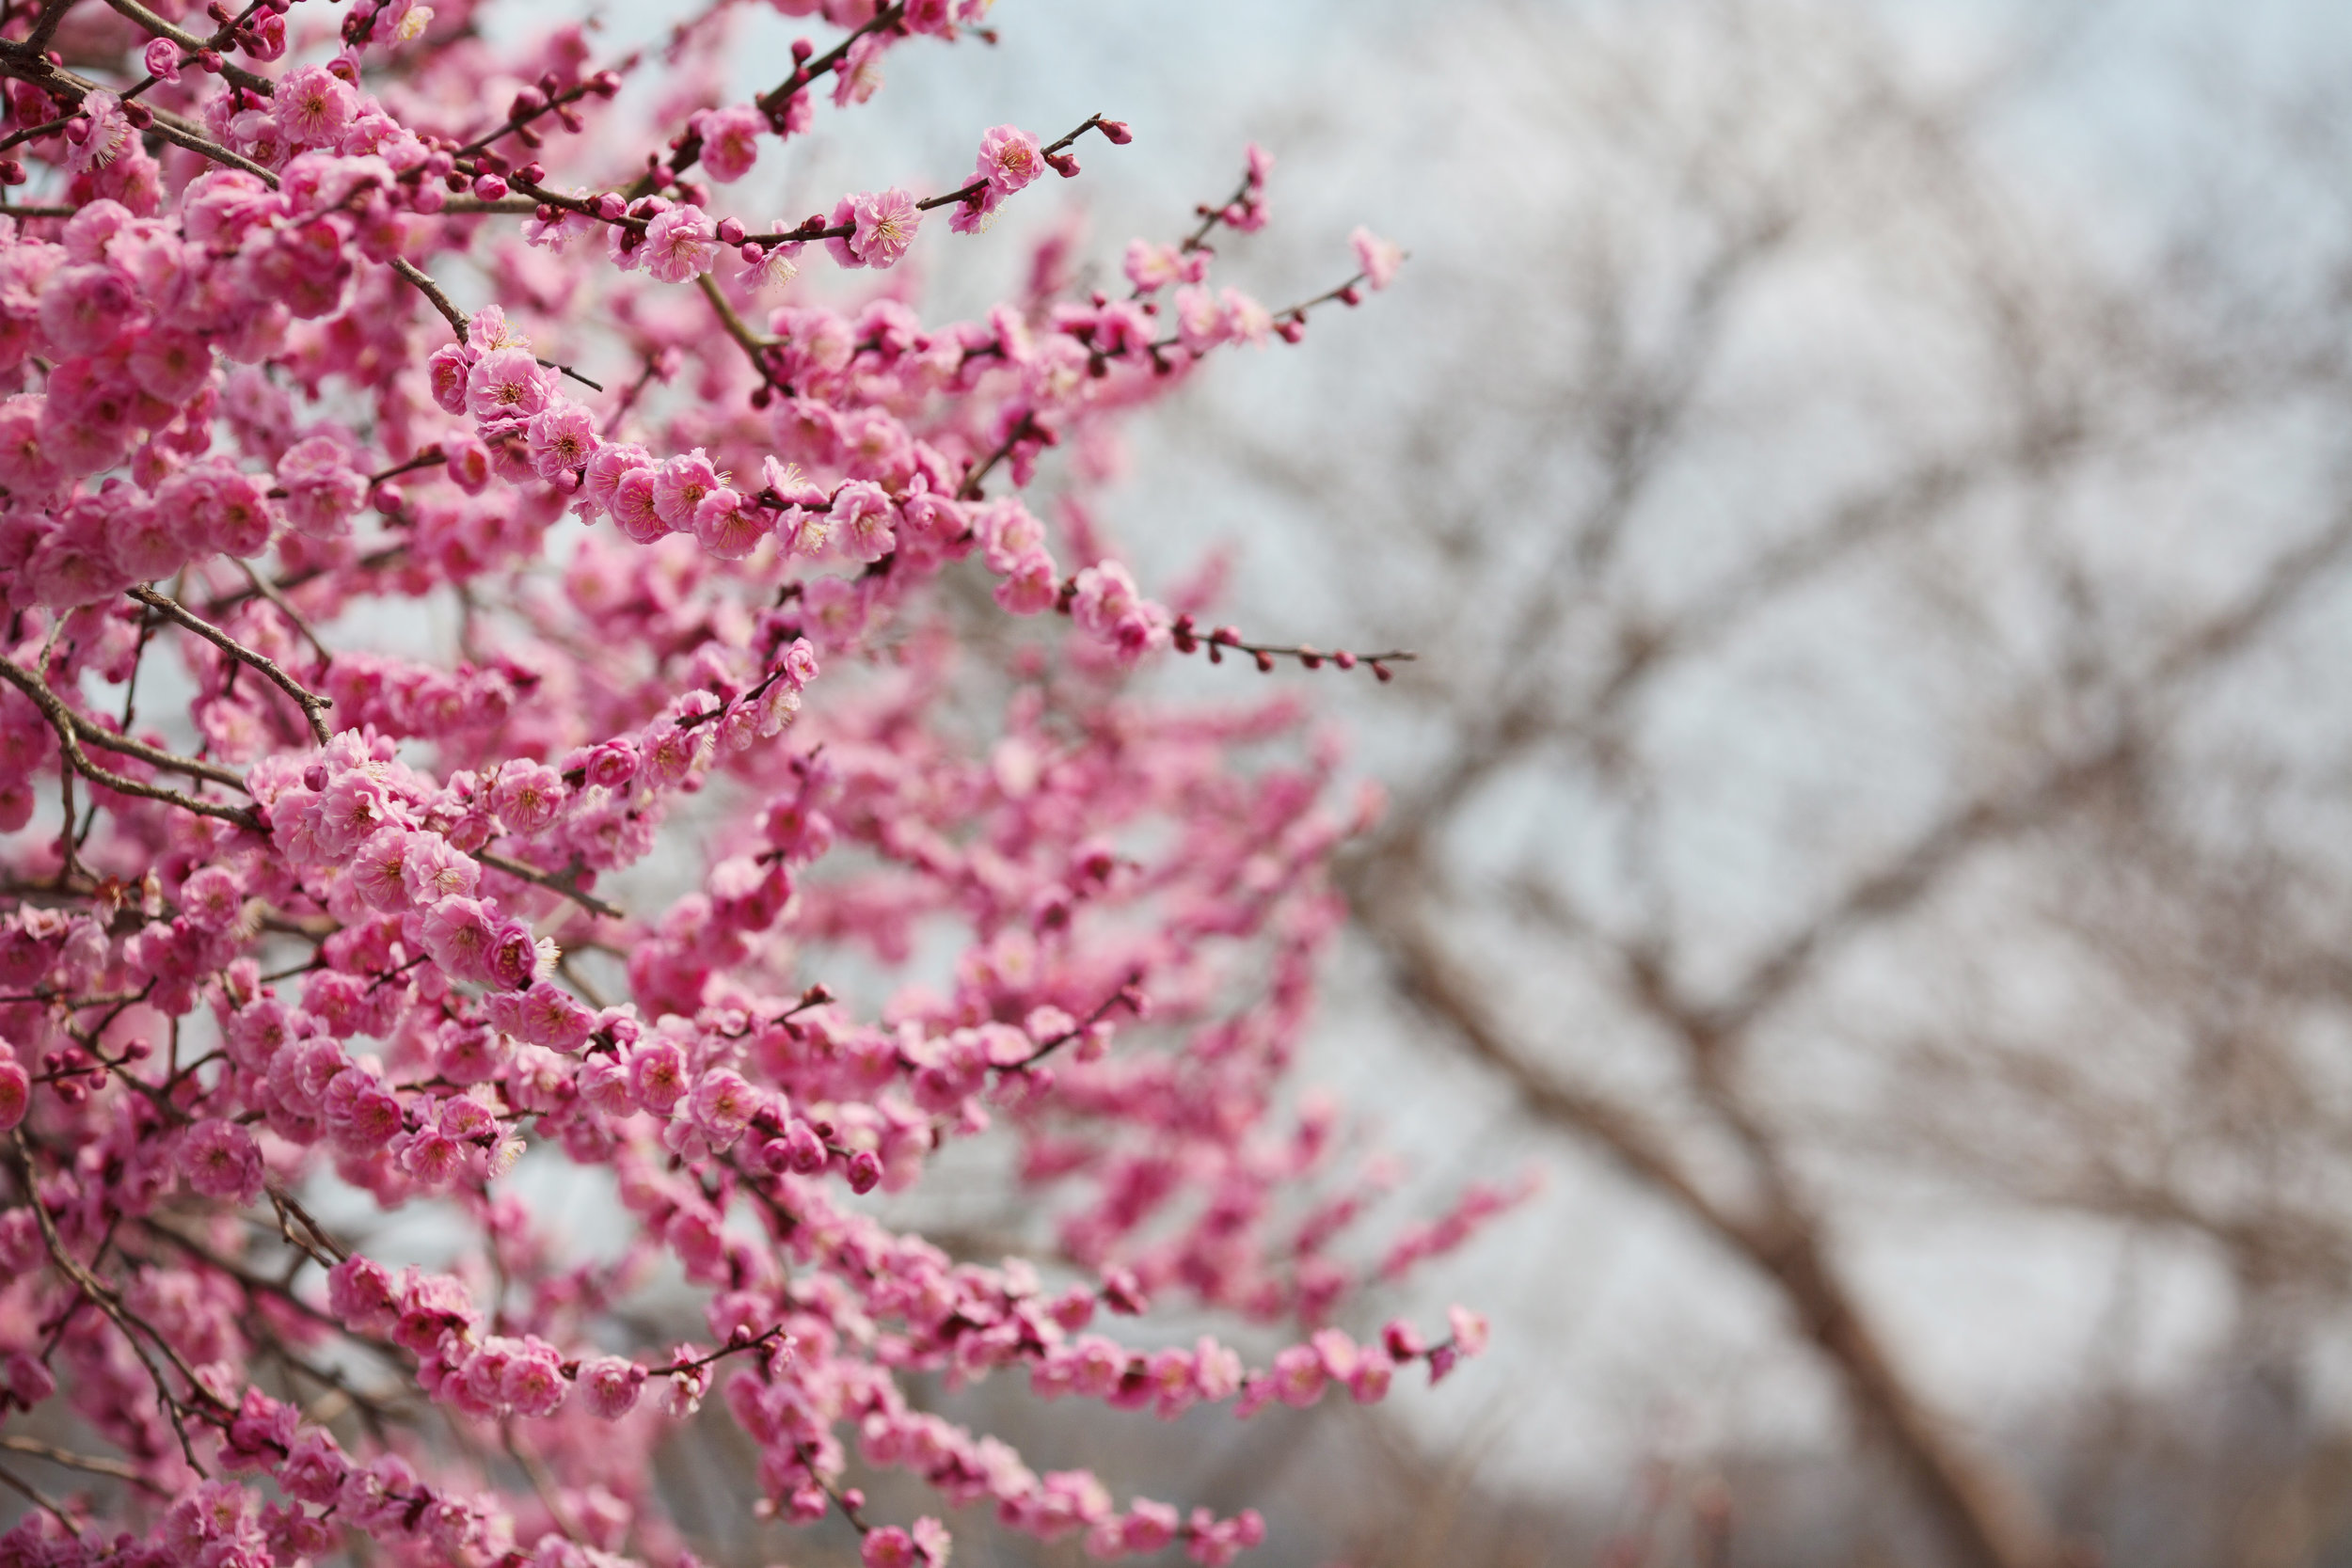 Plum blossoms blowing in the wind near Hiroshima, Japan.